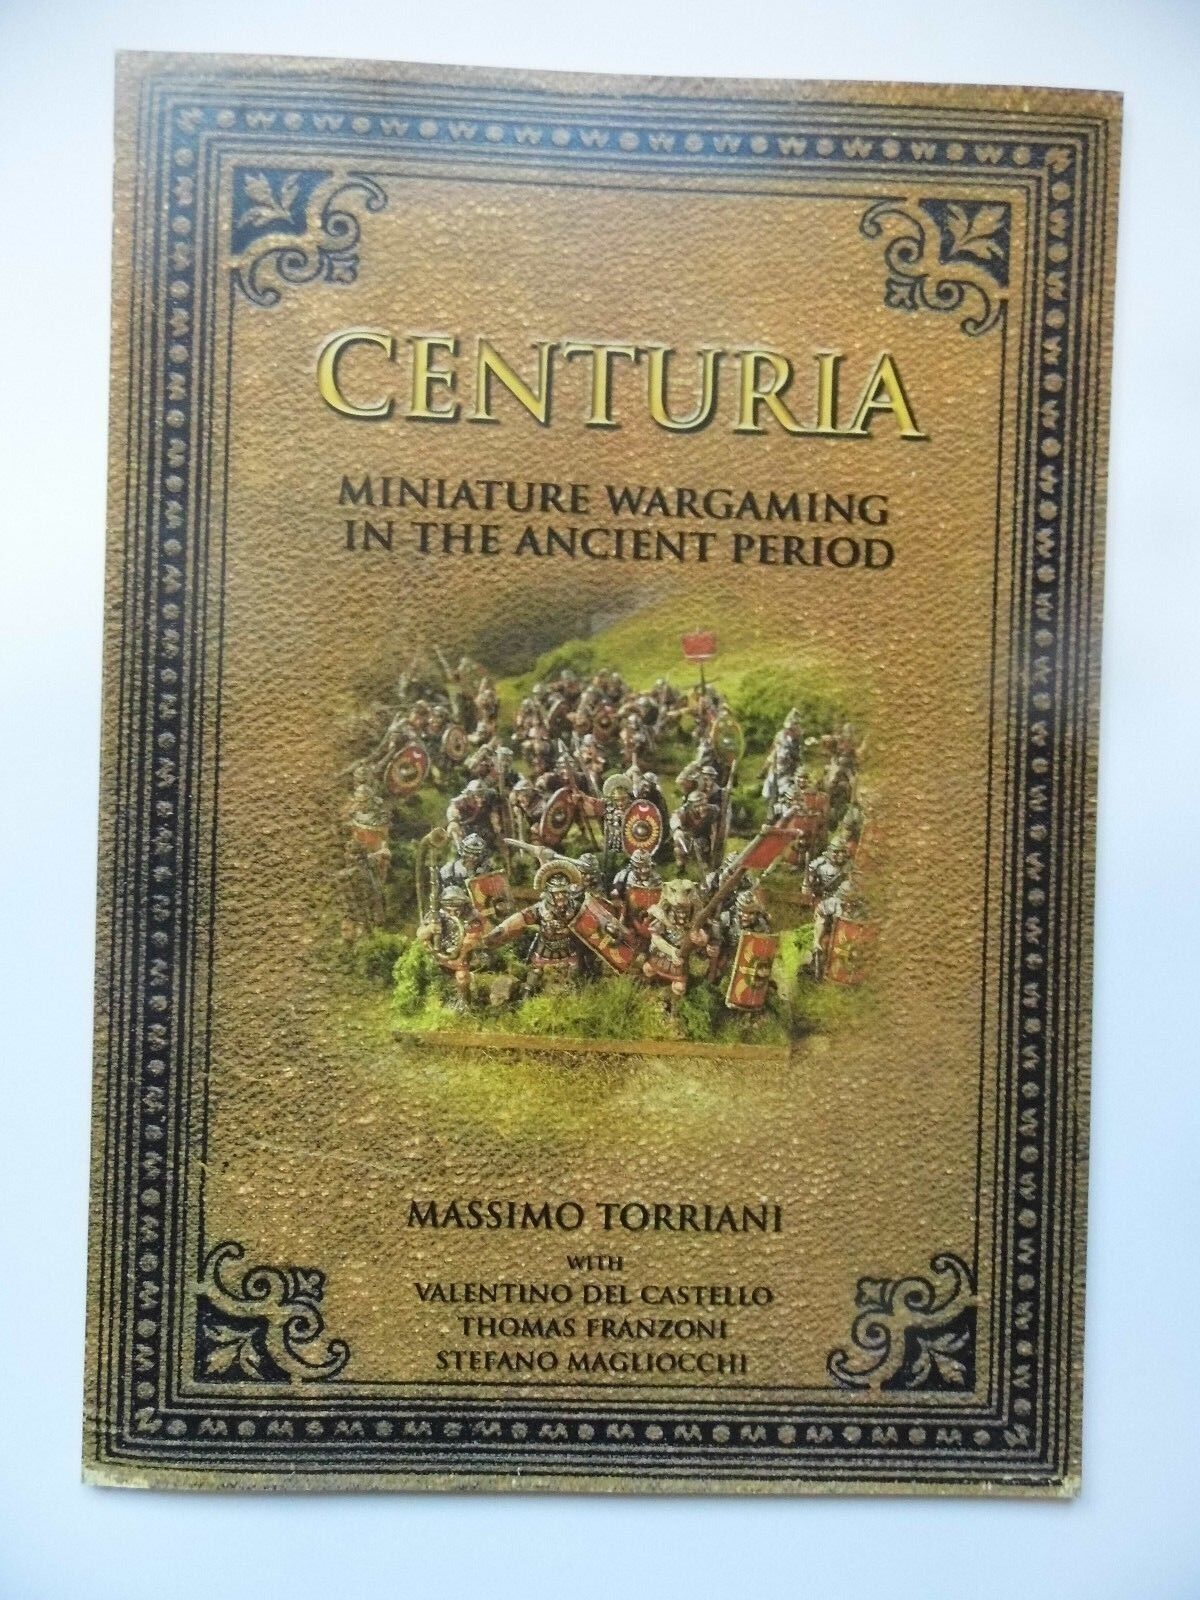 TATTY CENTURIA - (SOFTCOVER) MINIATURE WARGAMING IN THE ANCIENT PERIOD - NEW